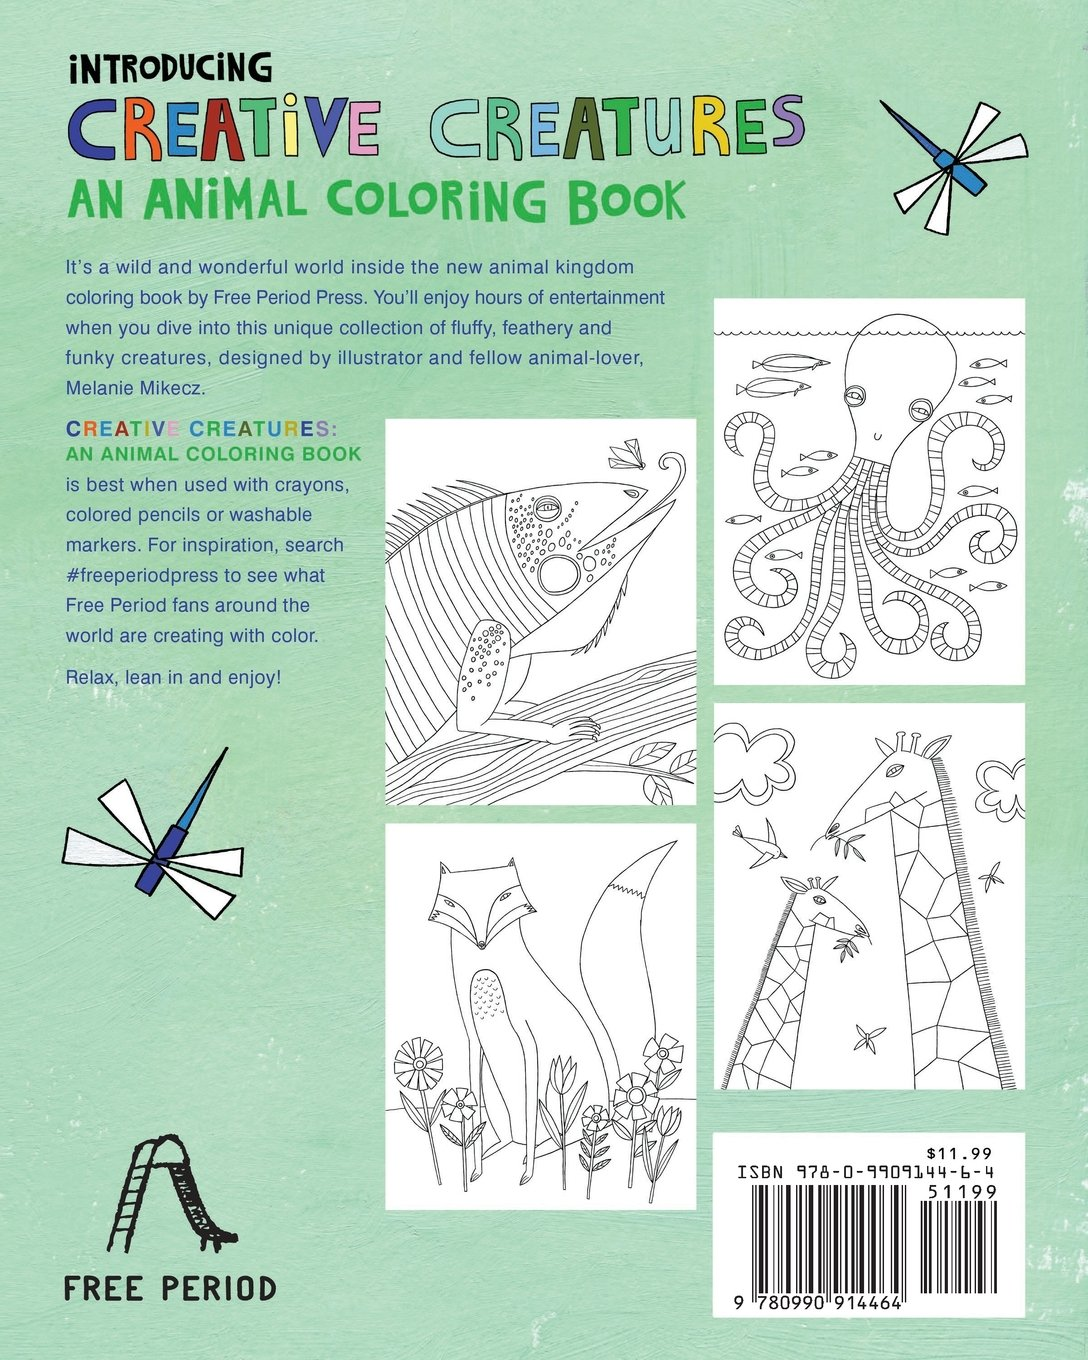 Animal kingdom coloring book gorilla - Creative Creatures An Animal Coloring Book Melanie Mikecz 9780990914464 Amazon Com Books